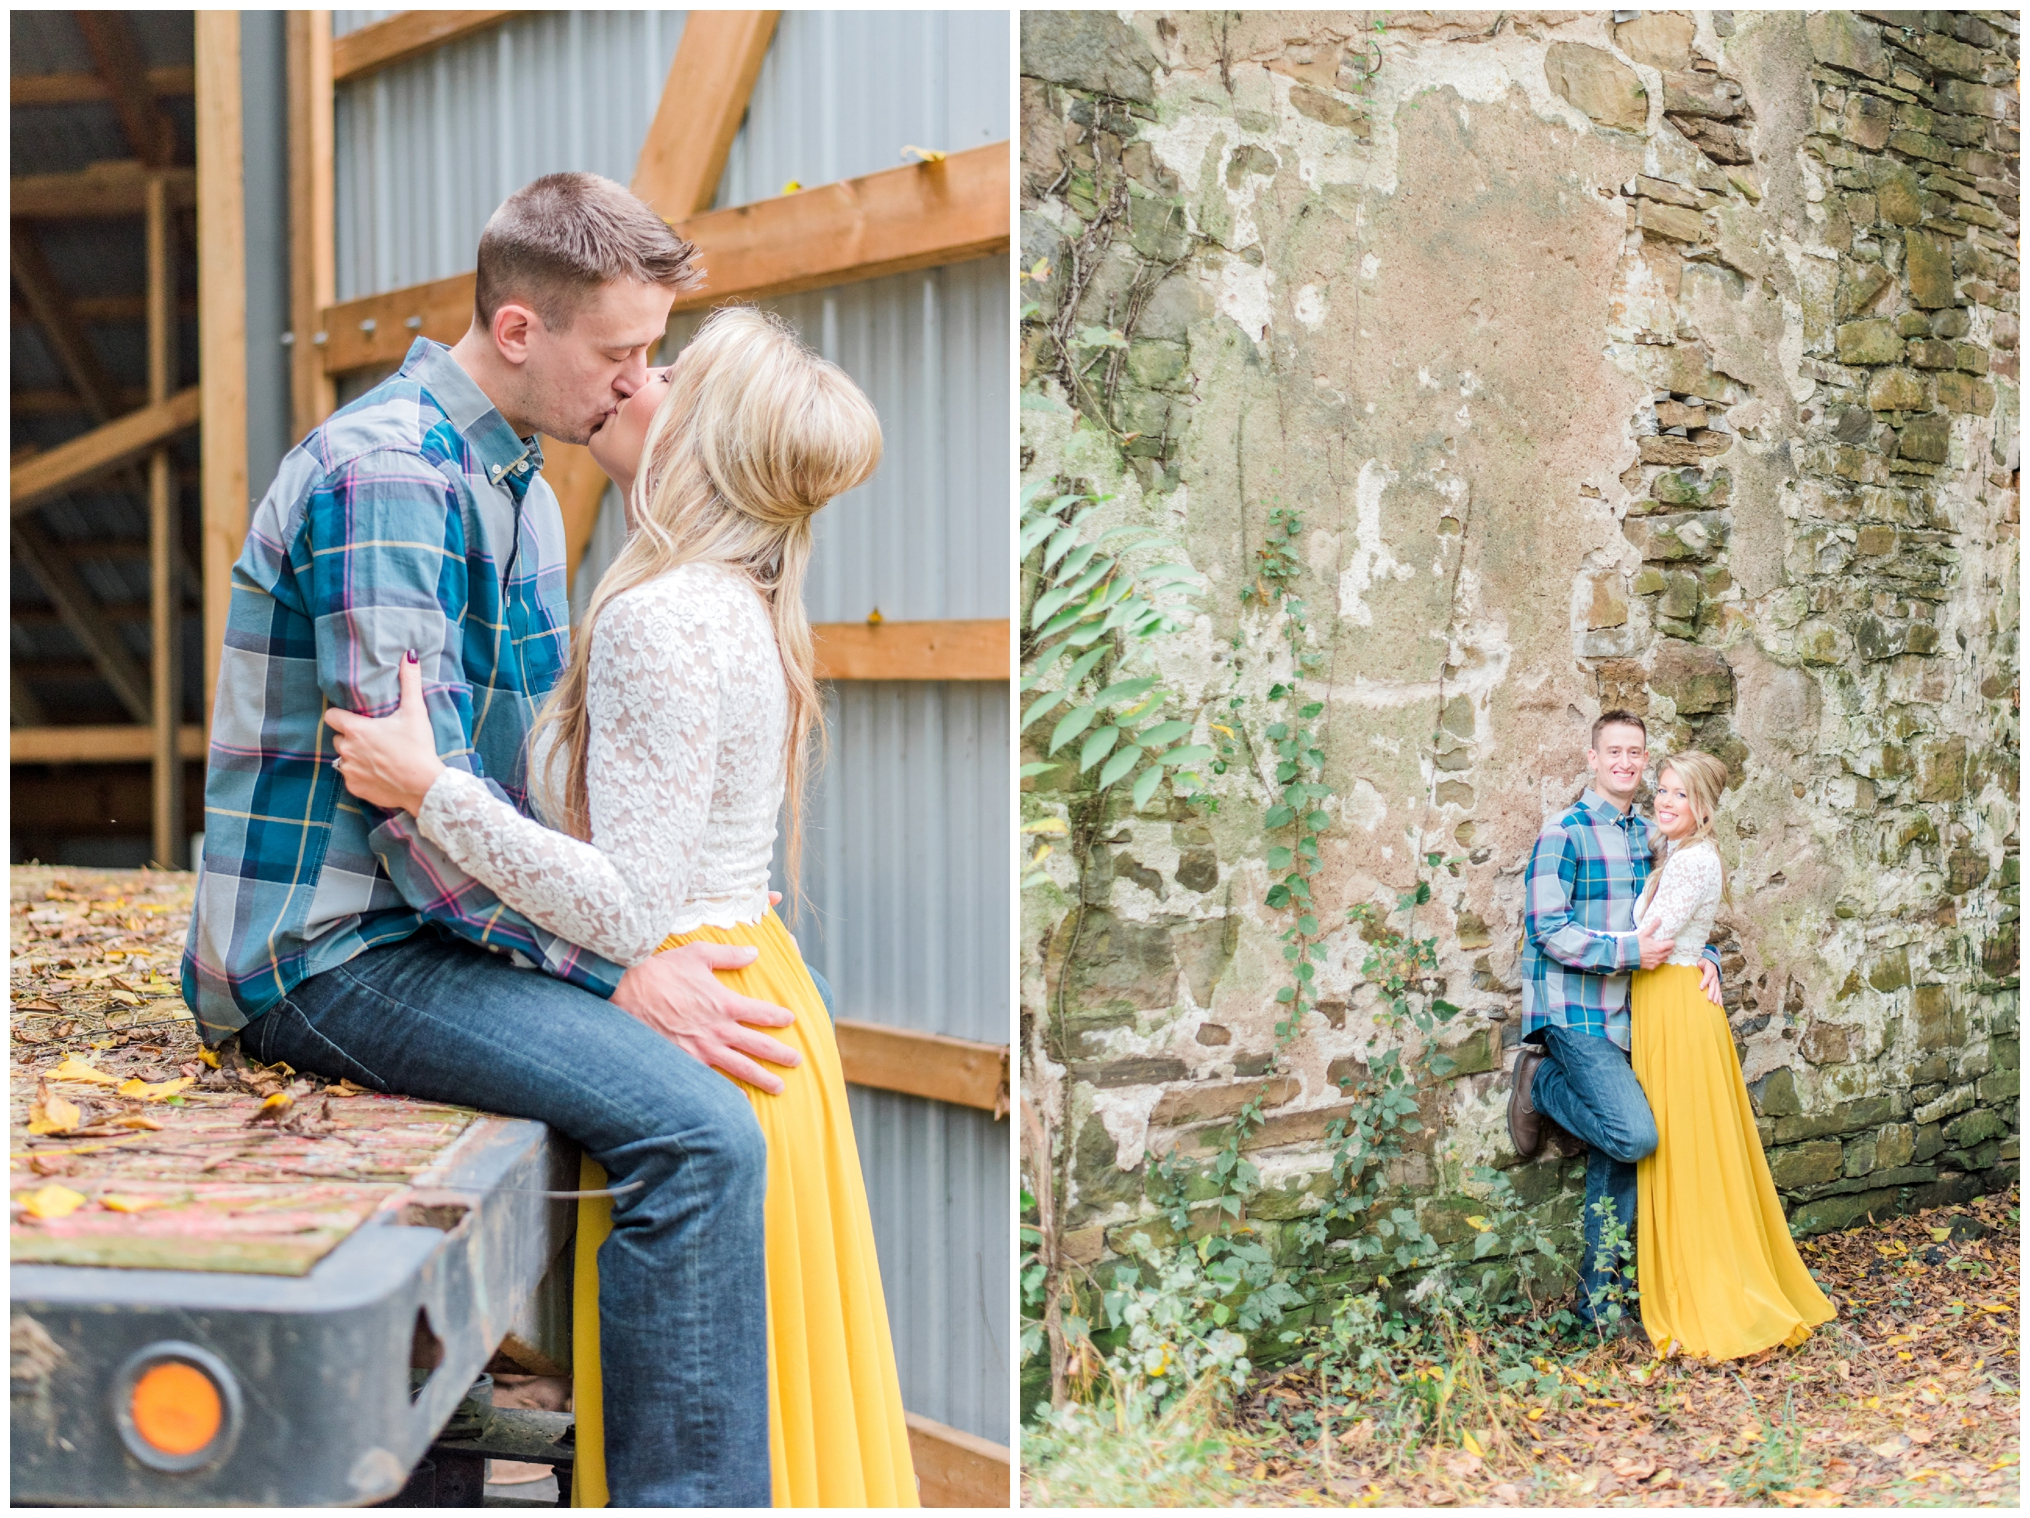 Fall Engagement Session Collegeville, PA - Krista Brackin Photography_0018.jpg